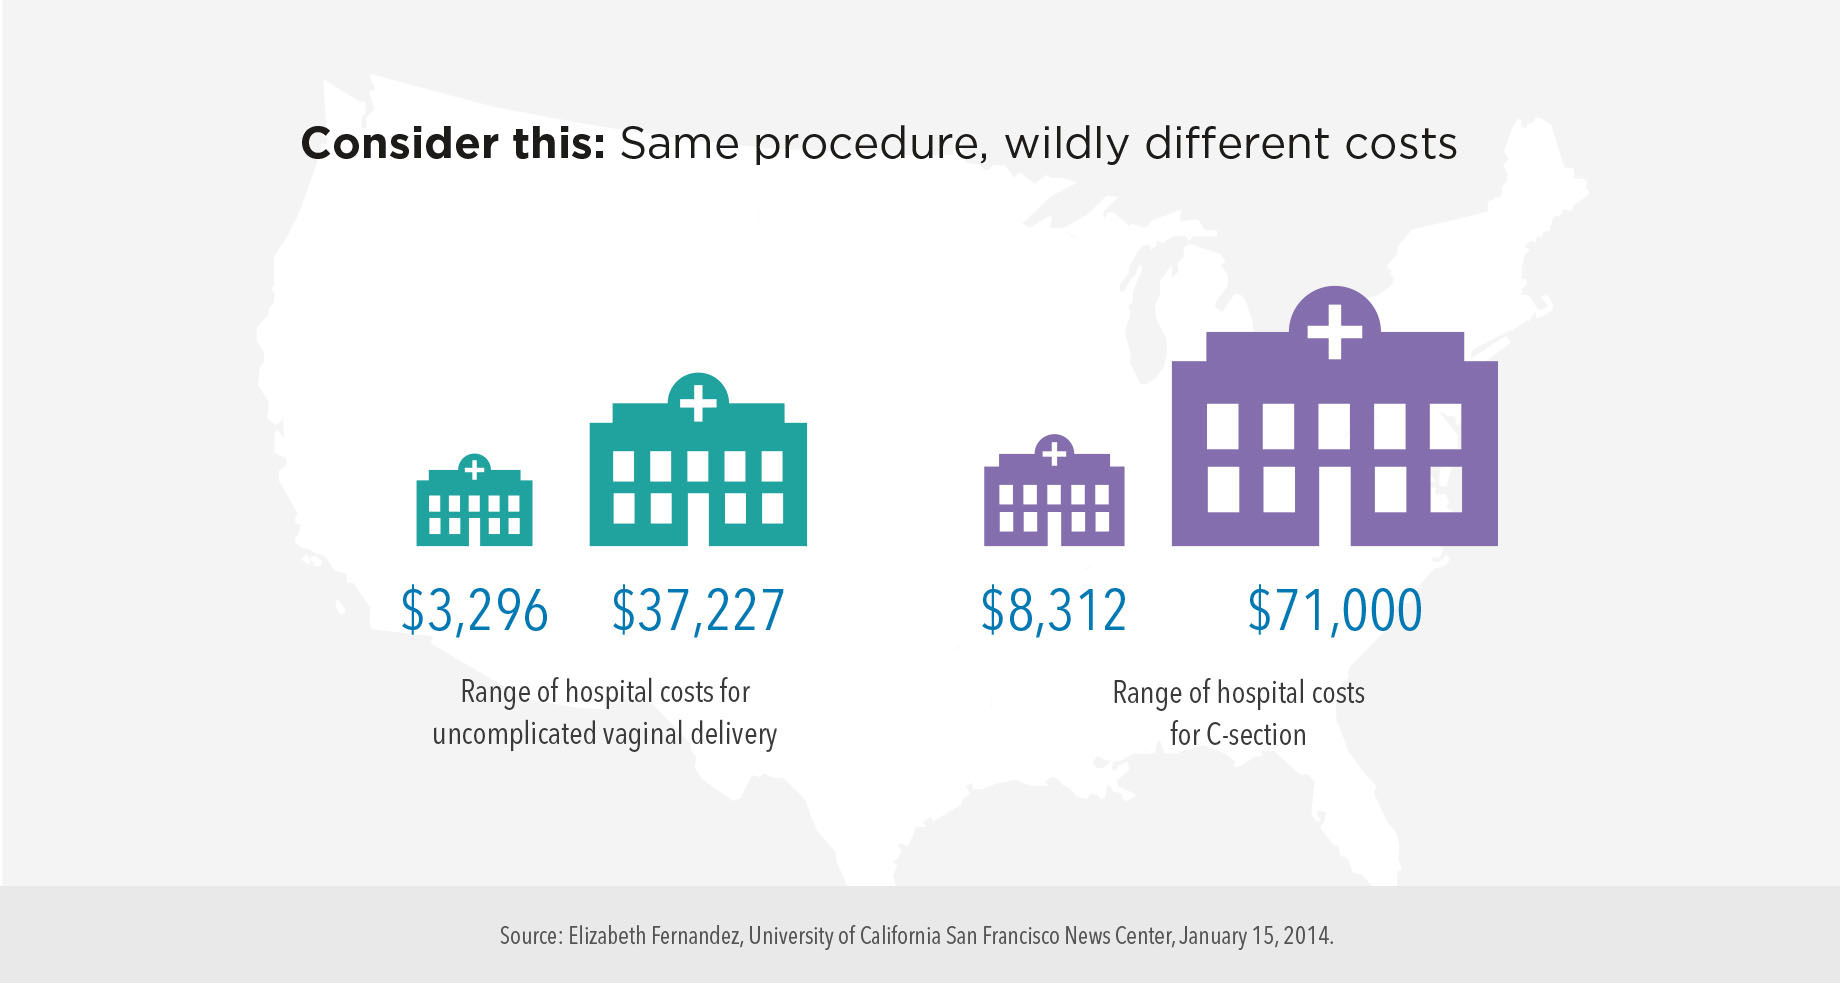 Consider this: Same procedure, wildly different costs. Hospital costs for uncomplicated vaginal delivery range from $3,296 to $37,227, whereas C-sections cost between $8,312 and $71,000.